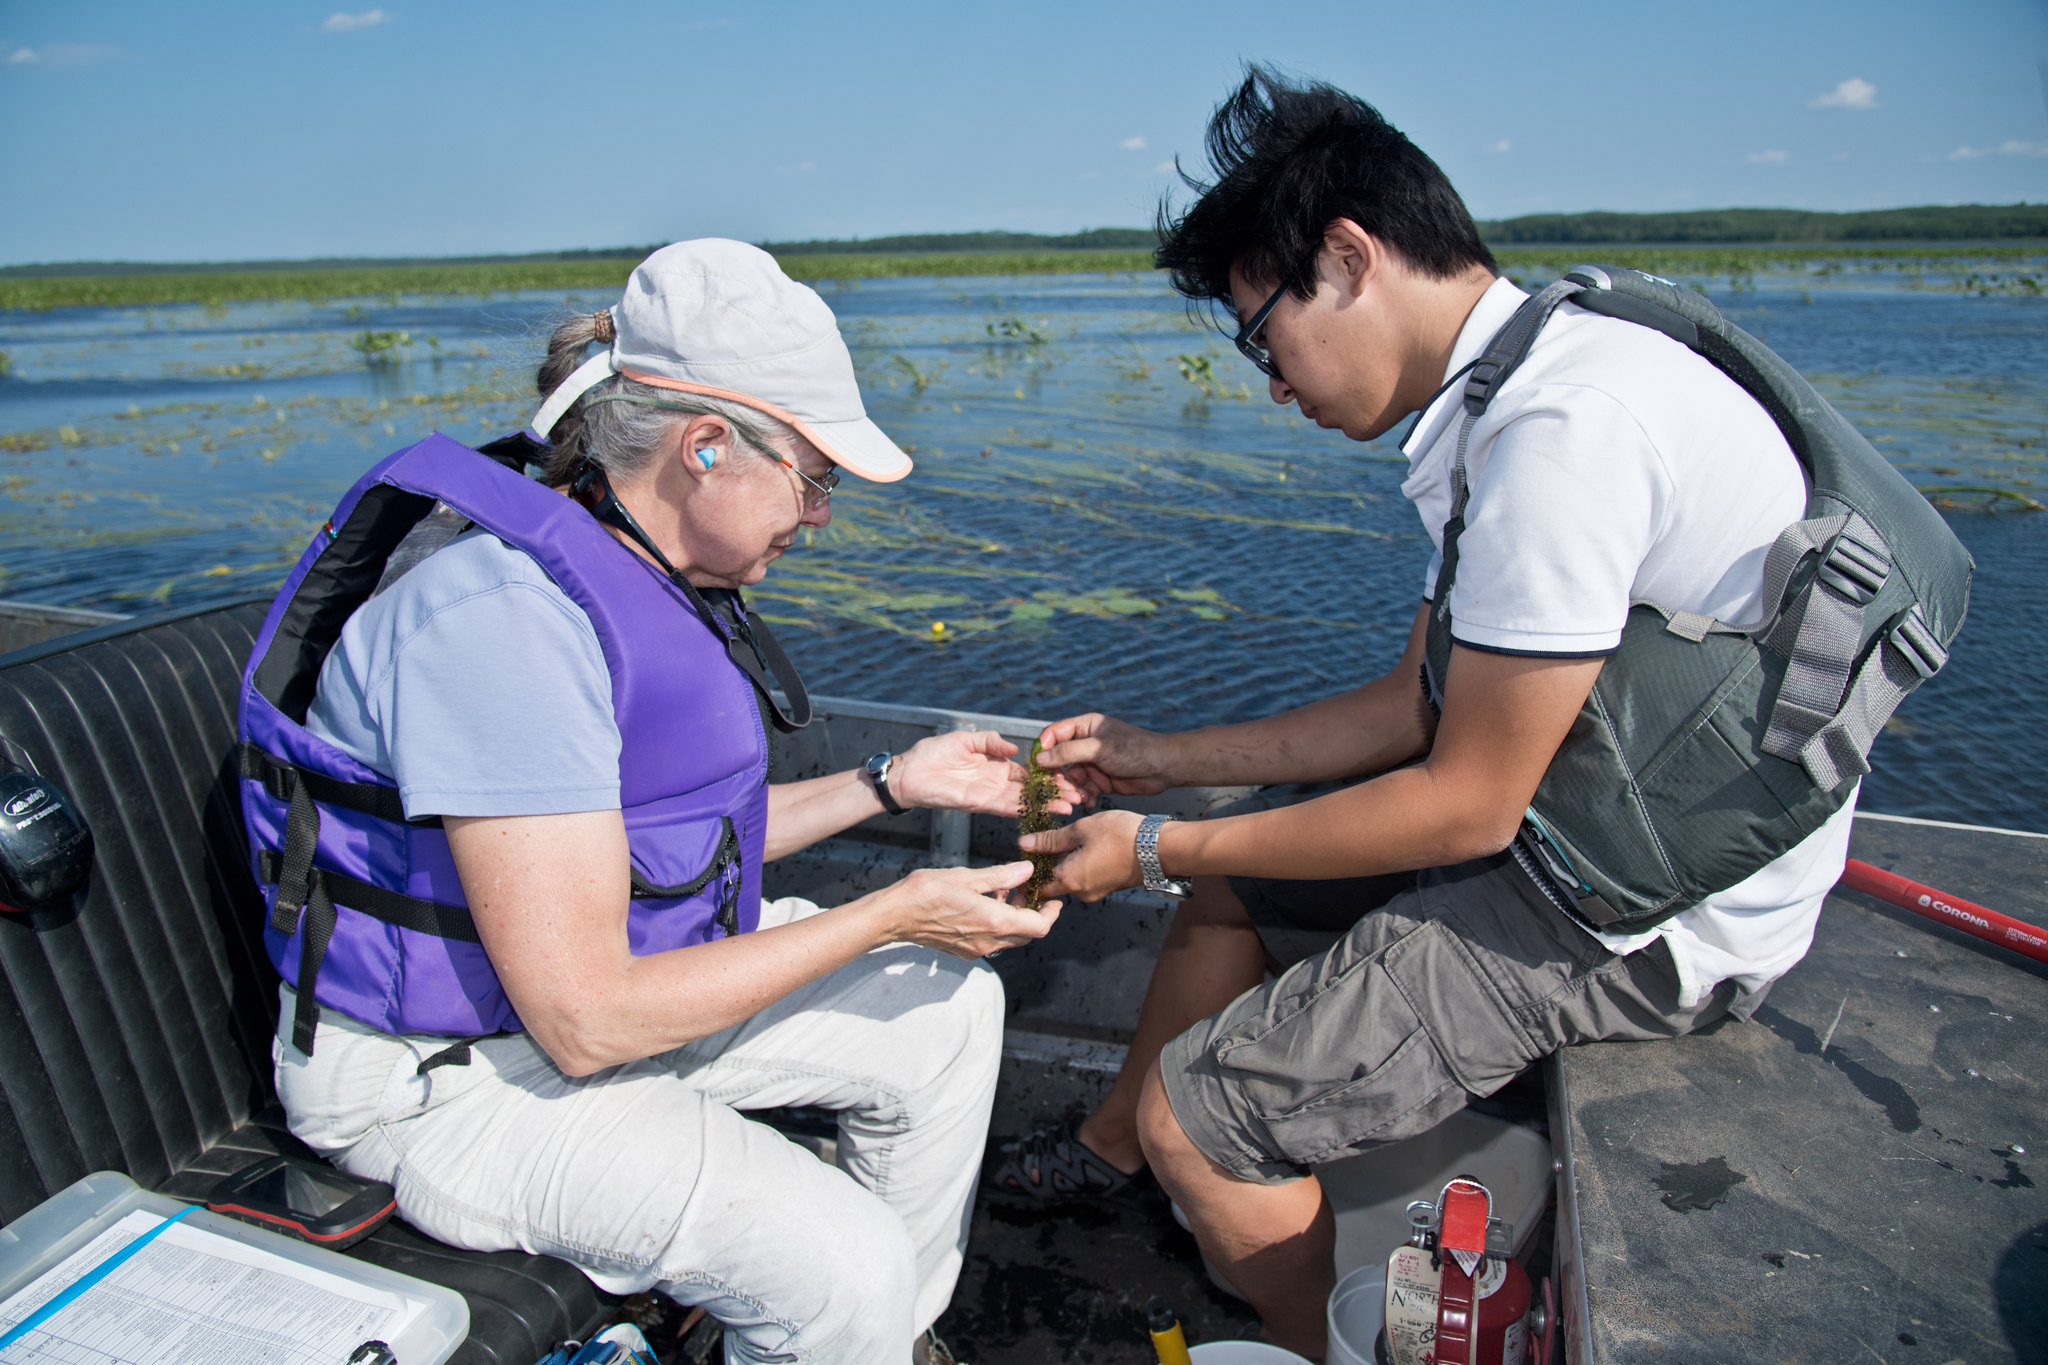 A professor and a graduate student in a boat on a wetland, looking at a plant specimen